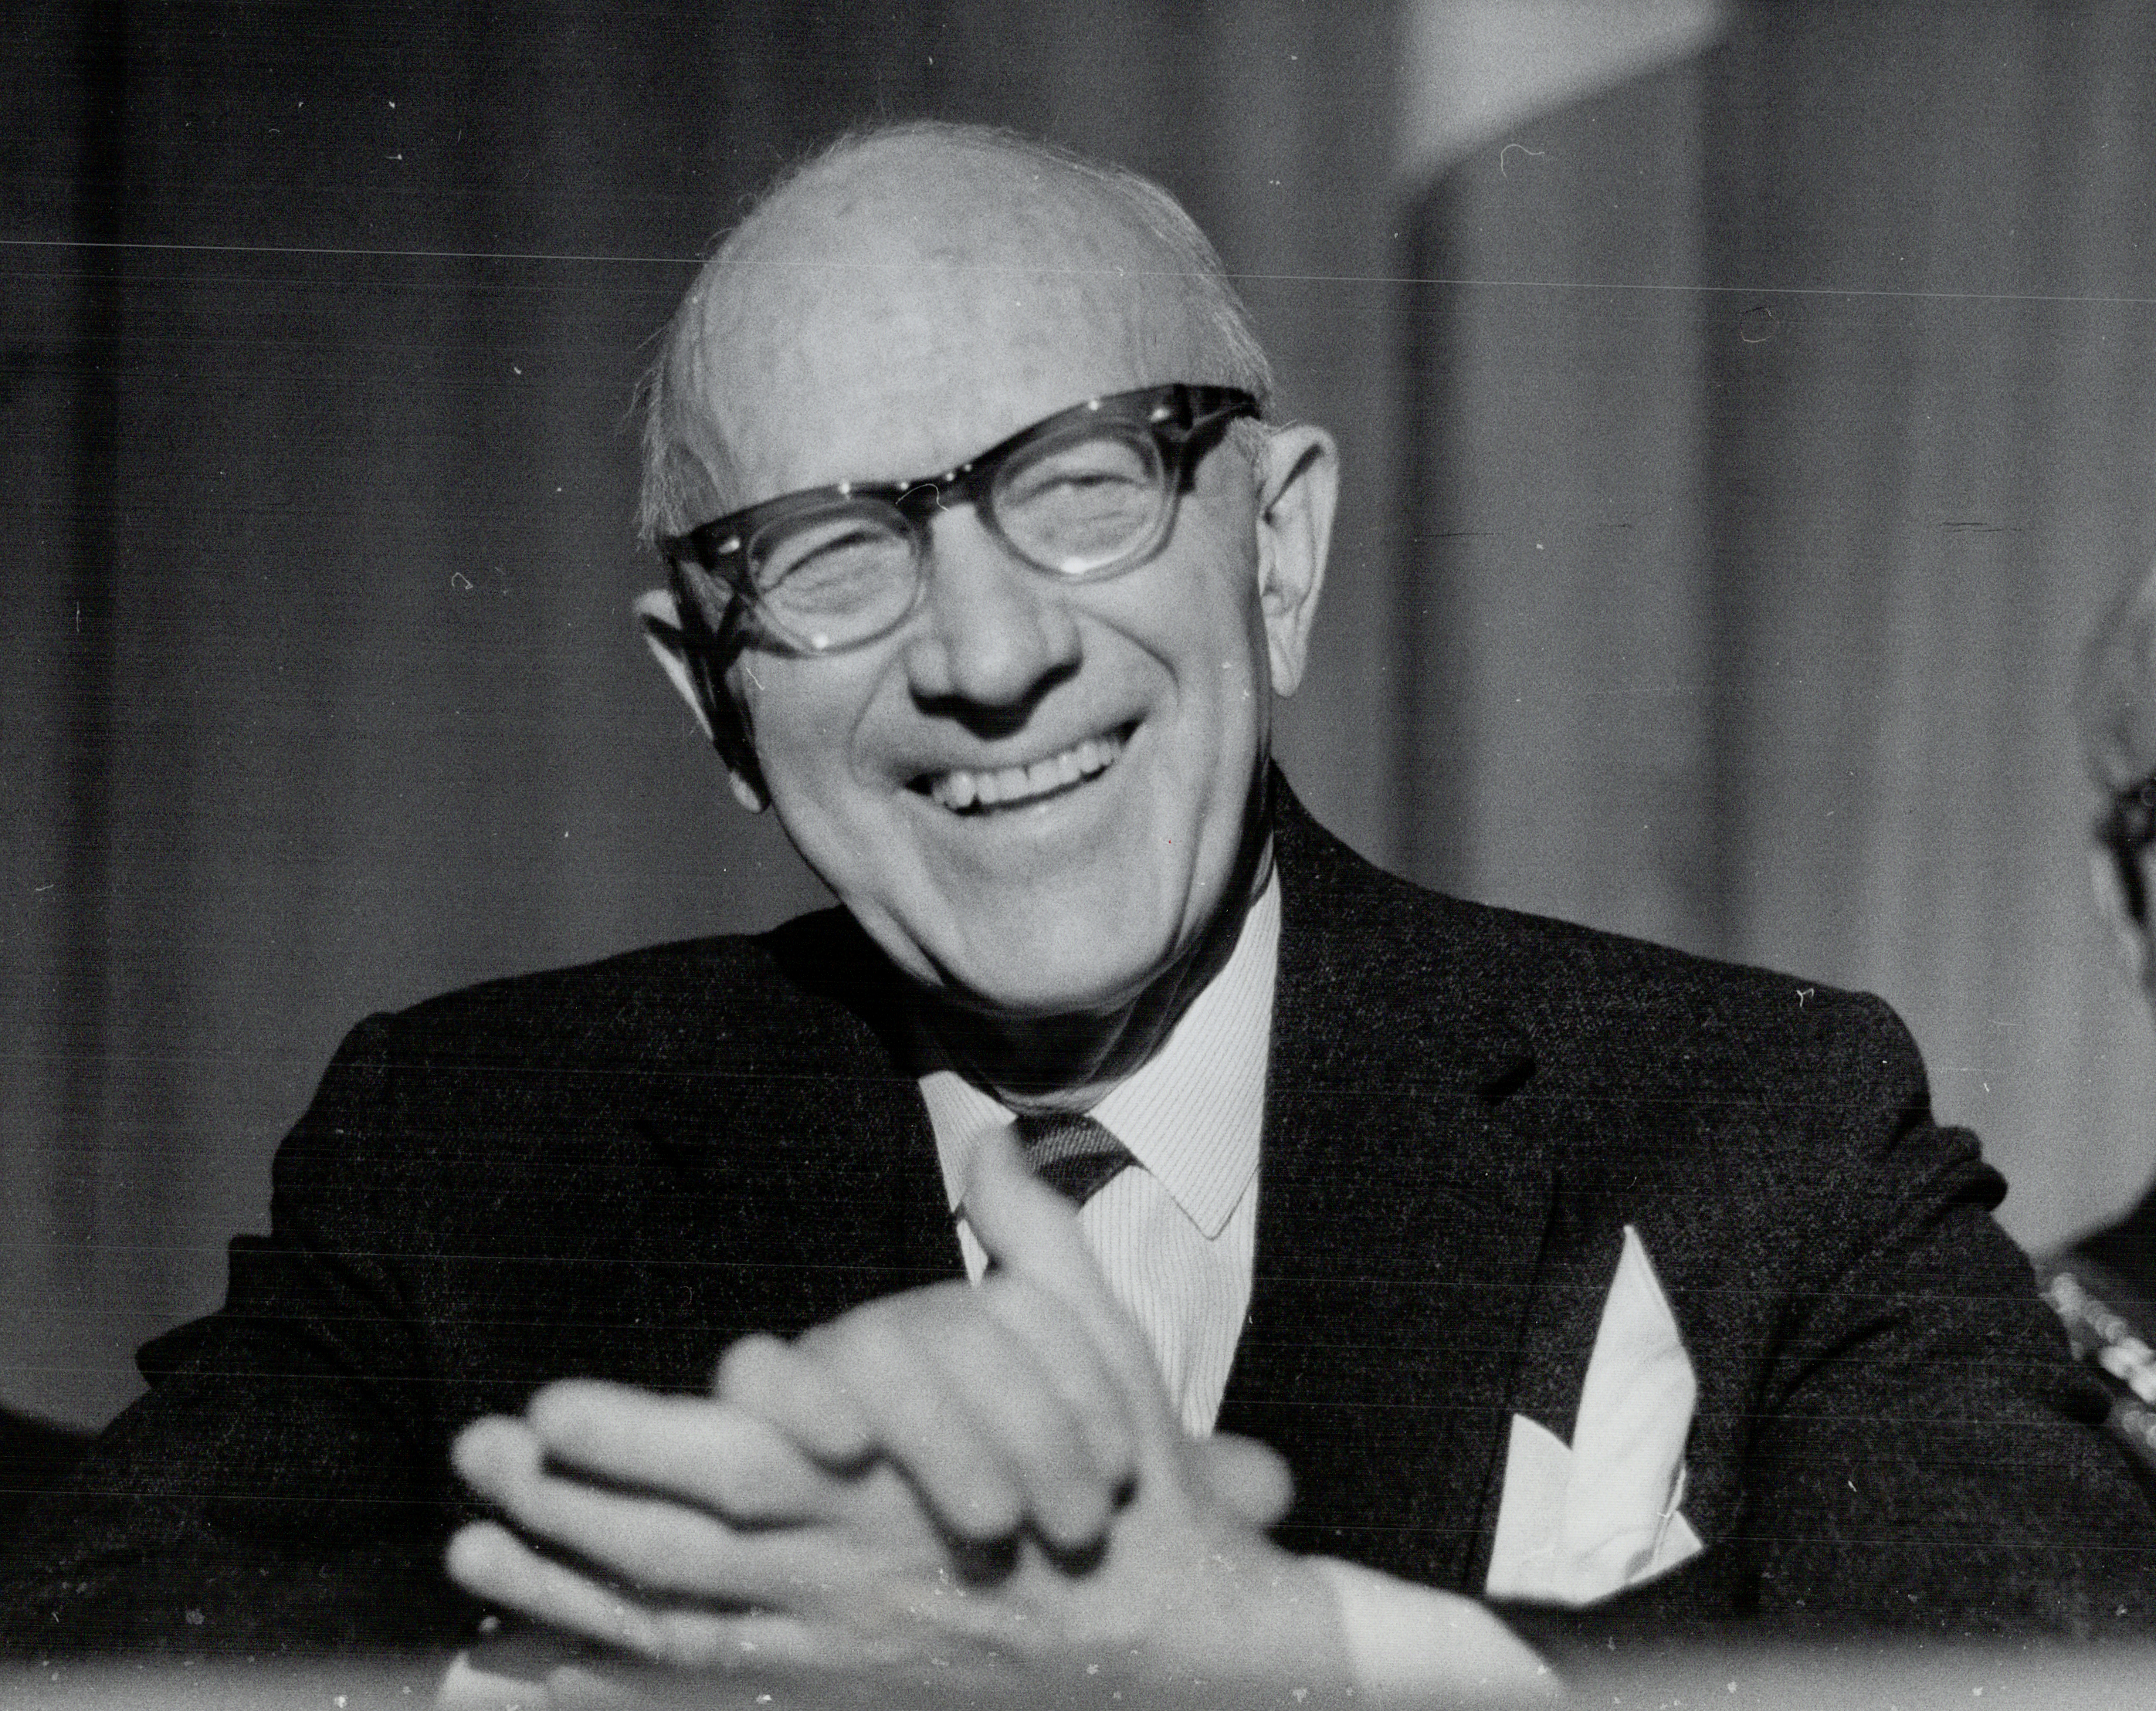 Dr Wilder Penfield on March 28, 1967.